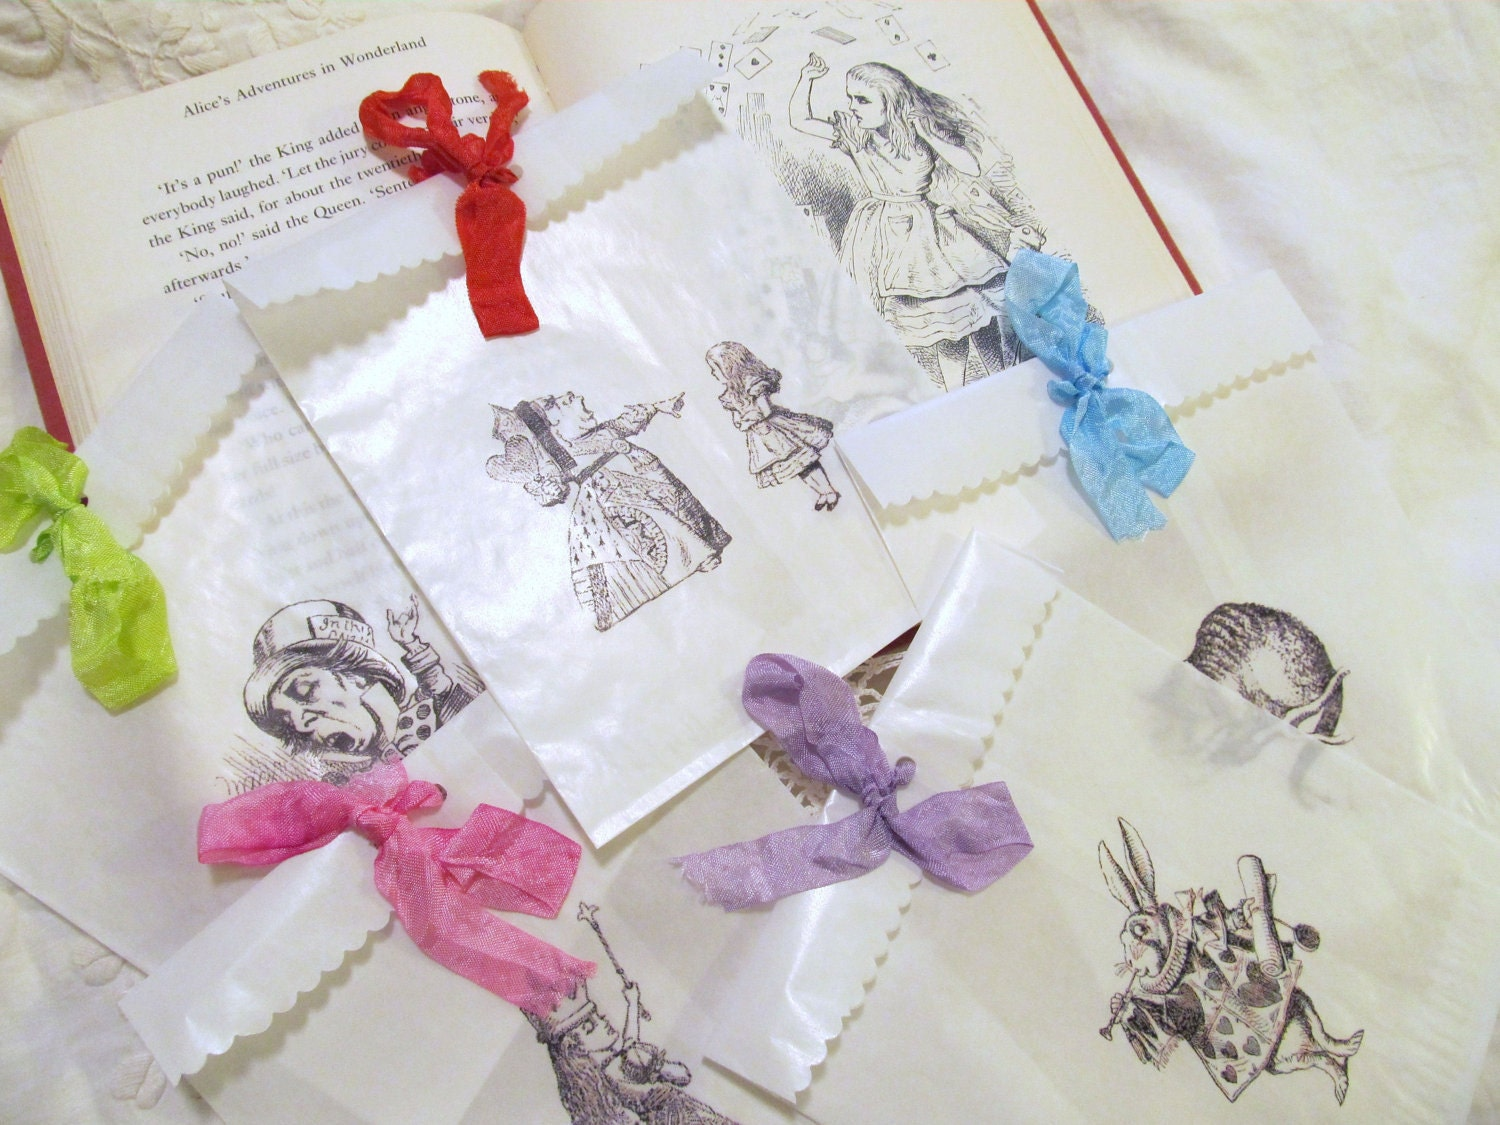 Alice in Wonderland Glassine Party Favor Treat Bags with Ribbon - Set of 10 - Choice of Ribbon Color